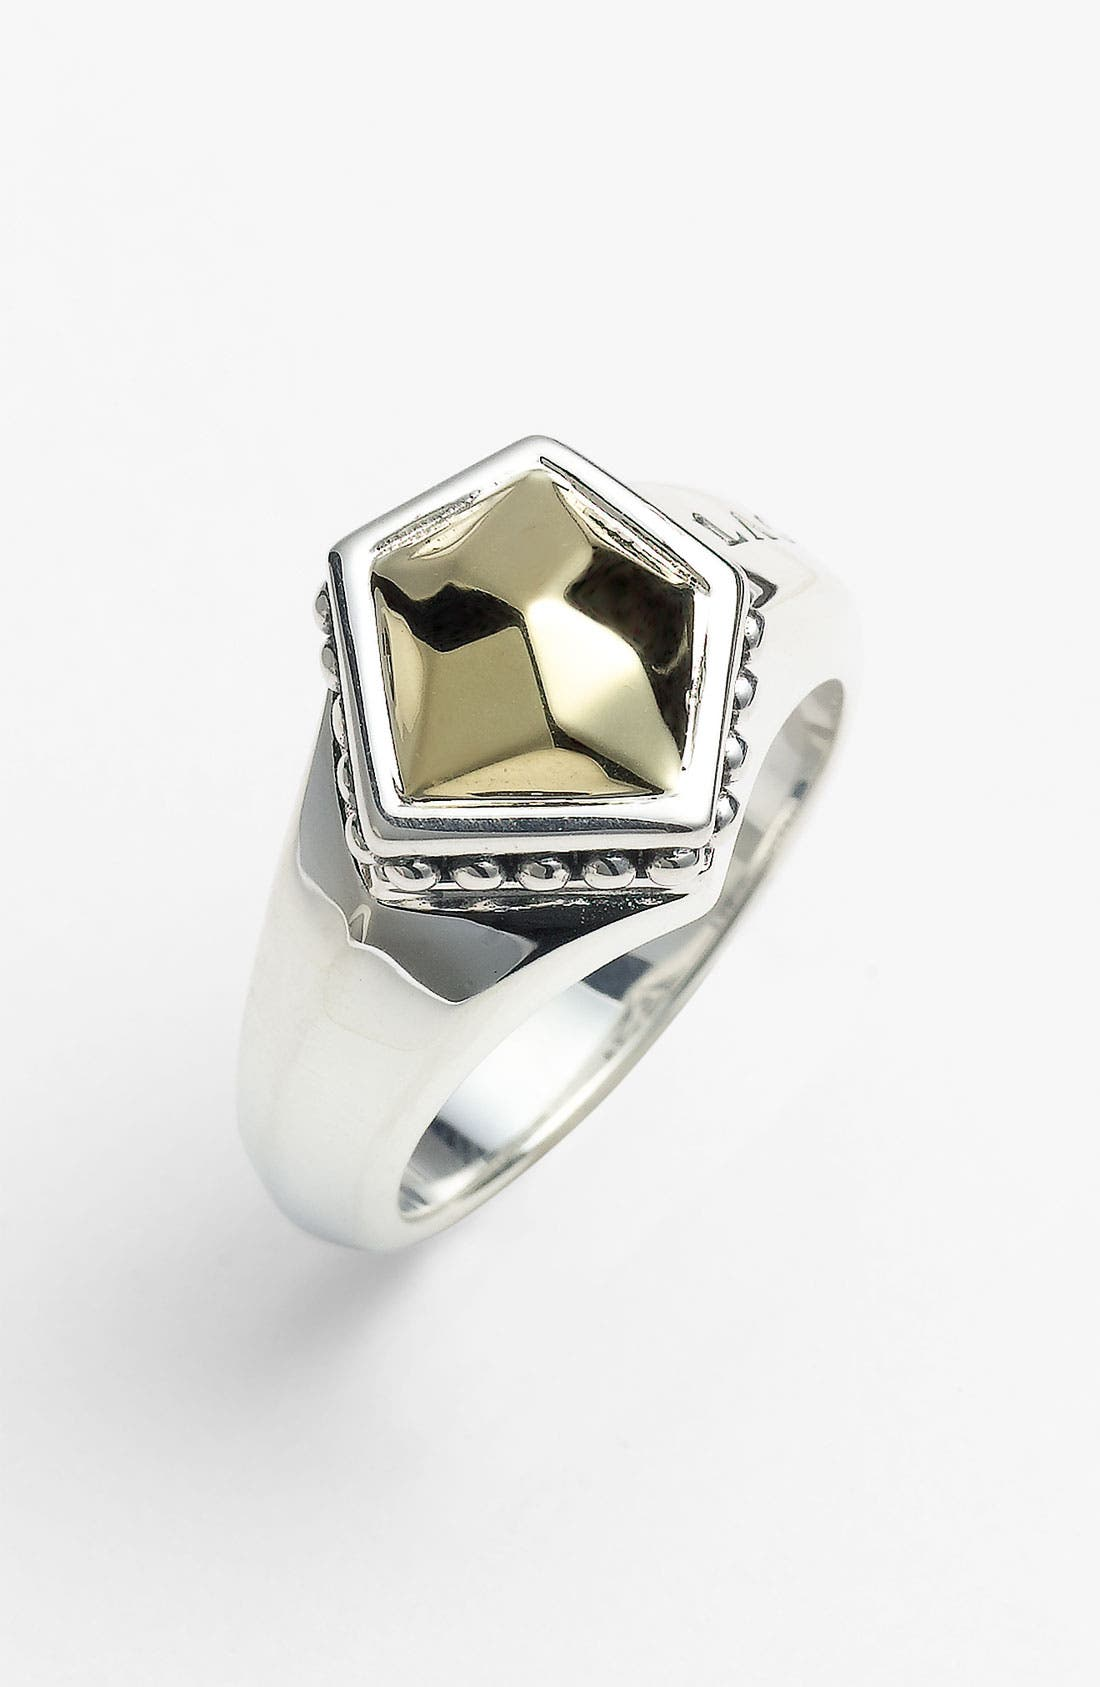 Alternate Image 1 Selected - LAGOS 'Rocks' Small Angled Two Tone Ring